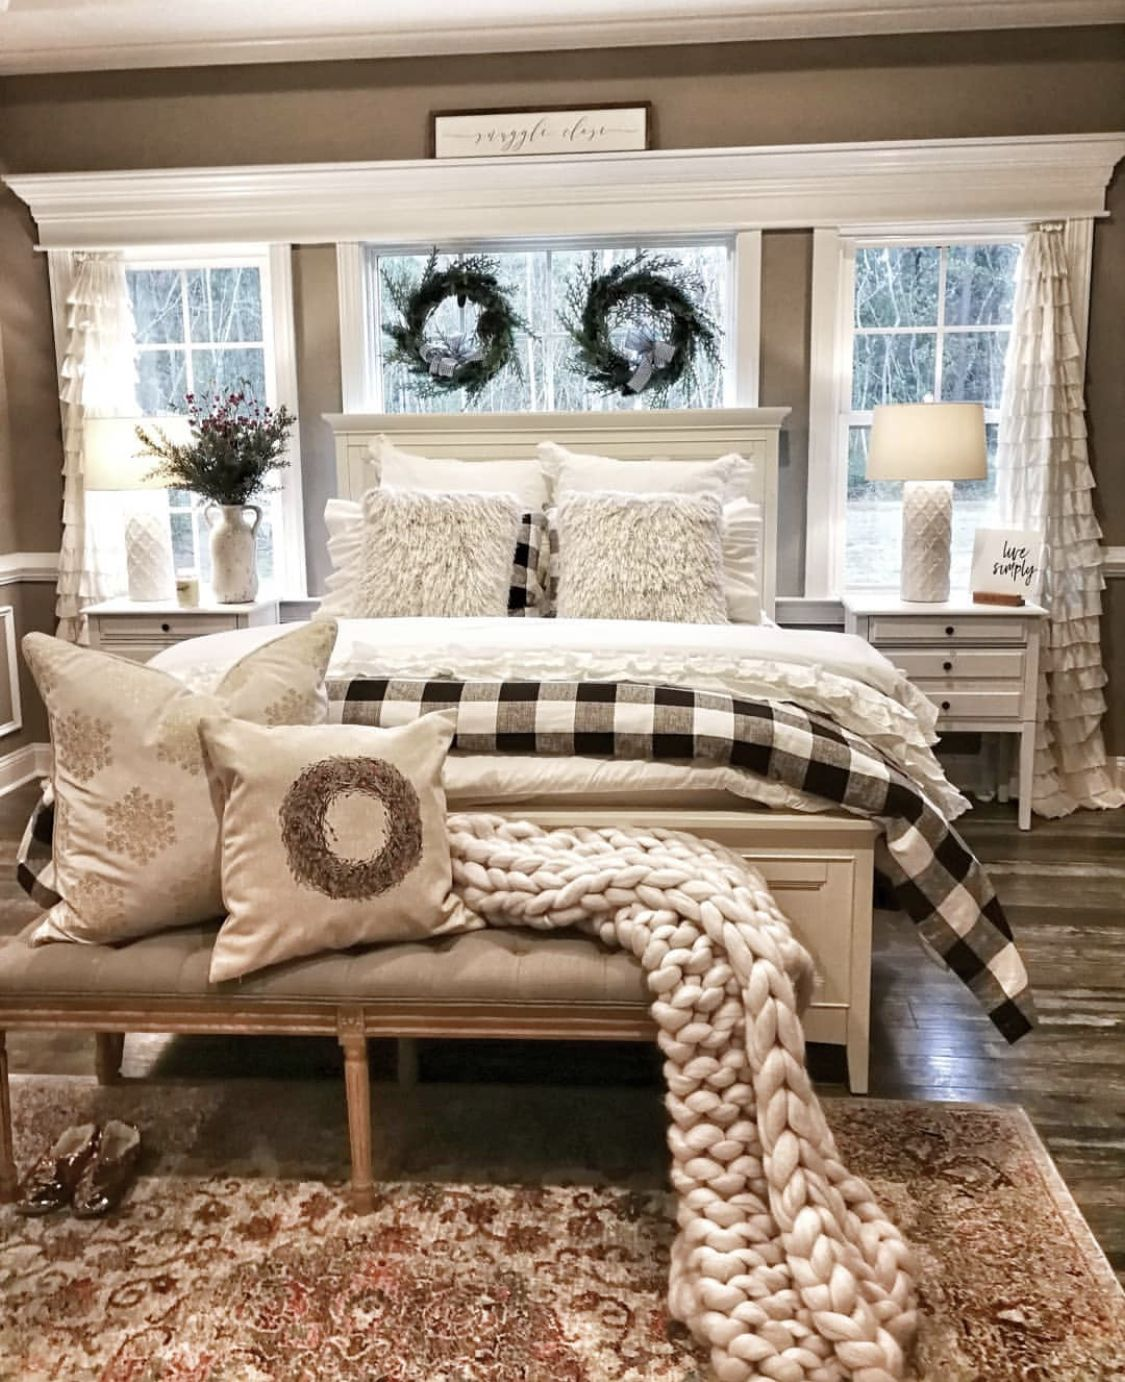 Look At The Drapes Master Bedrooms Decor Remodel Bedroom Farmhouse Bedroom Decor